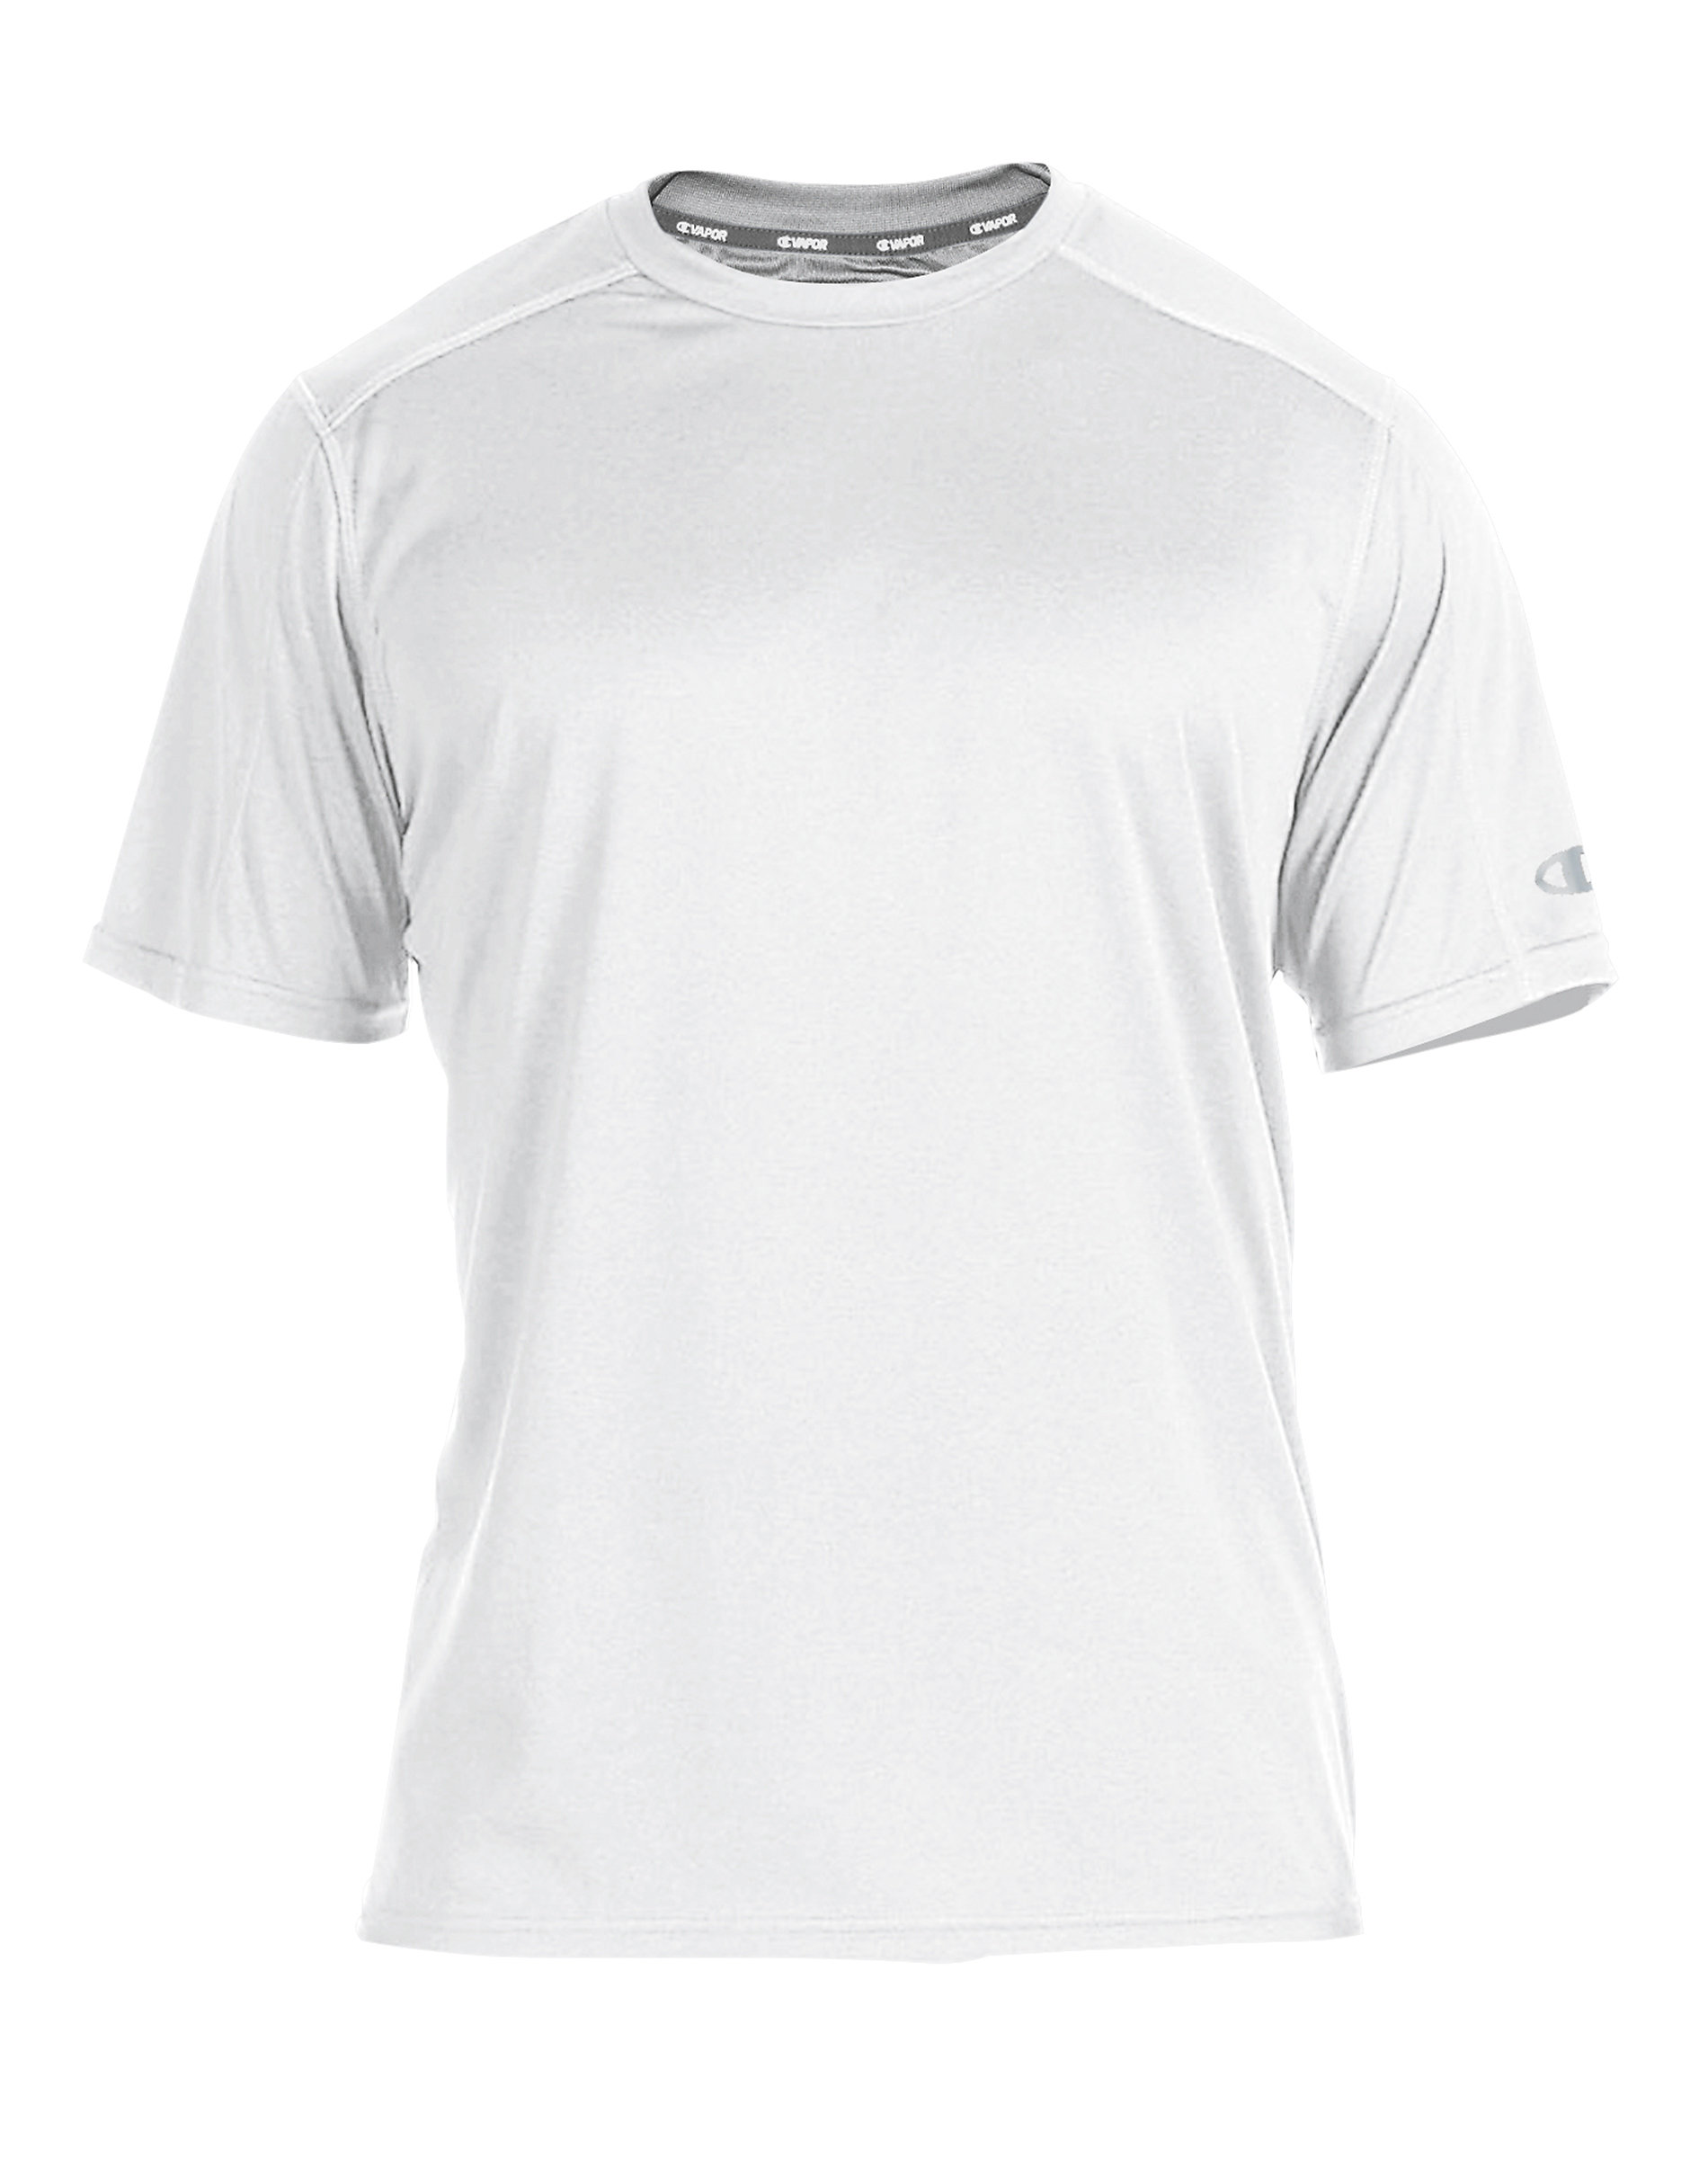 75126b6ae Champion Big & Tall Men's Core Basic Performance Tee Style Ch405 ...